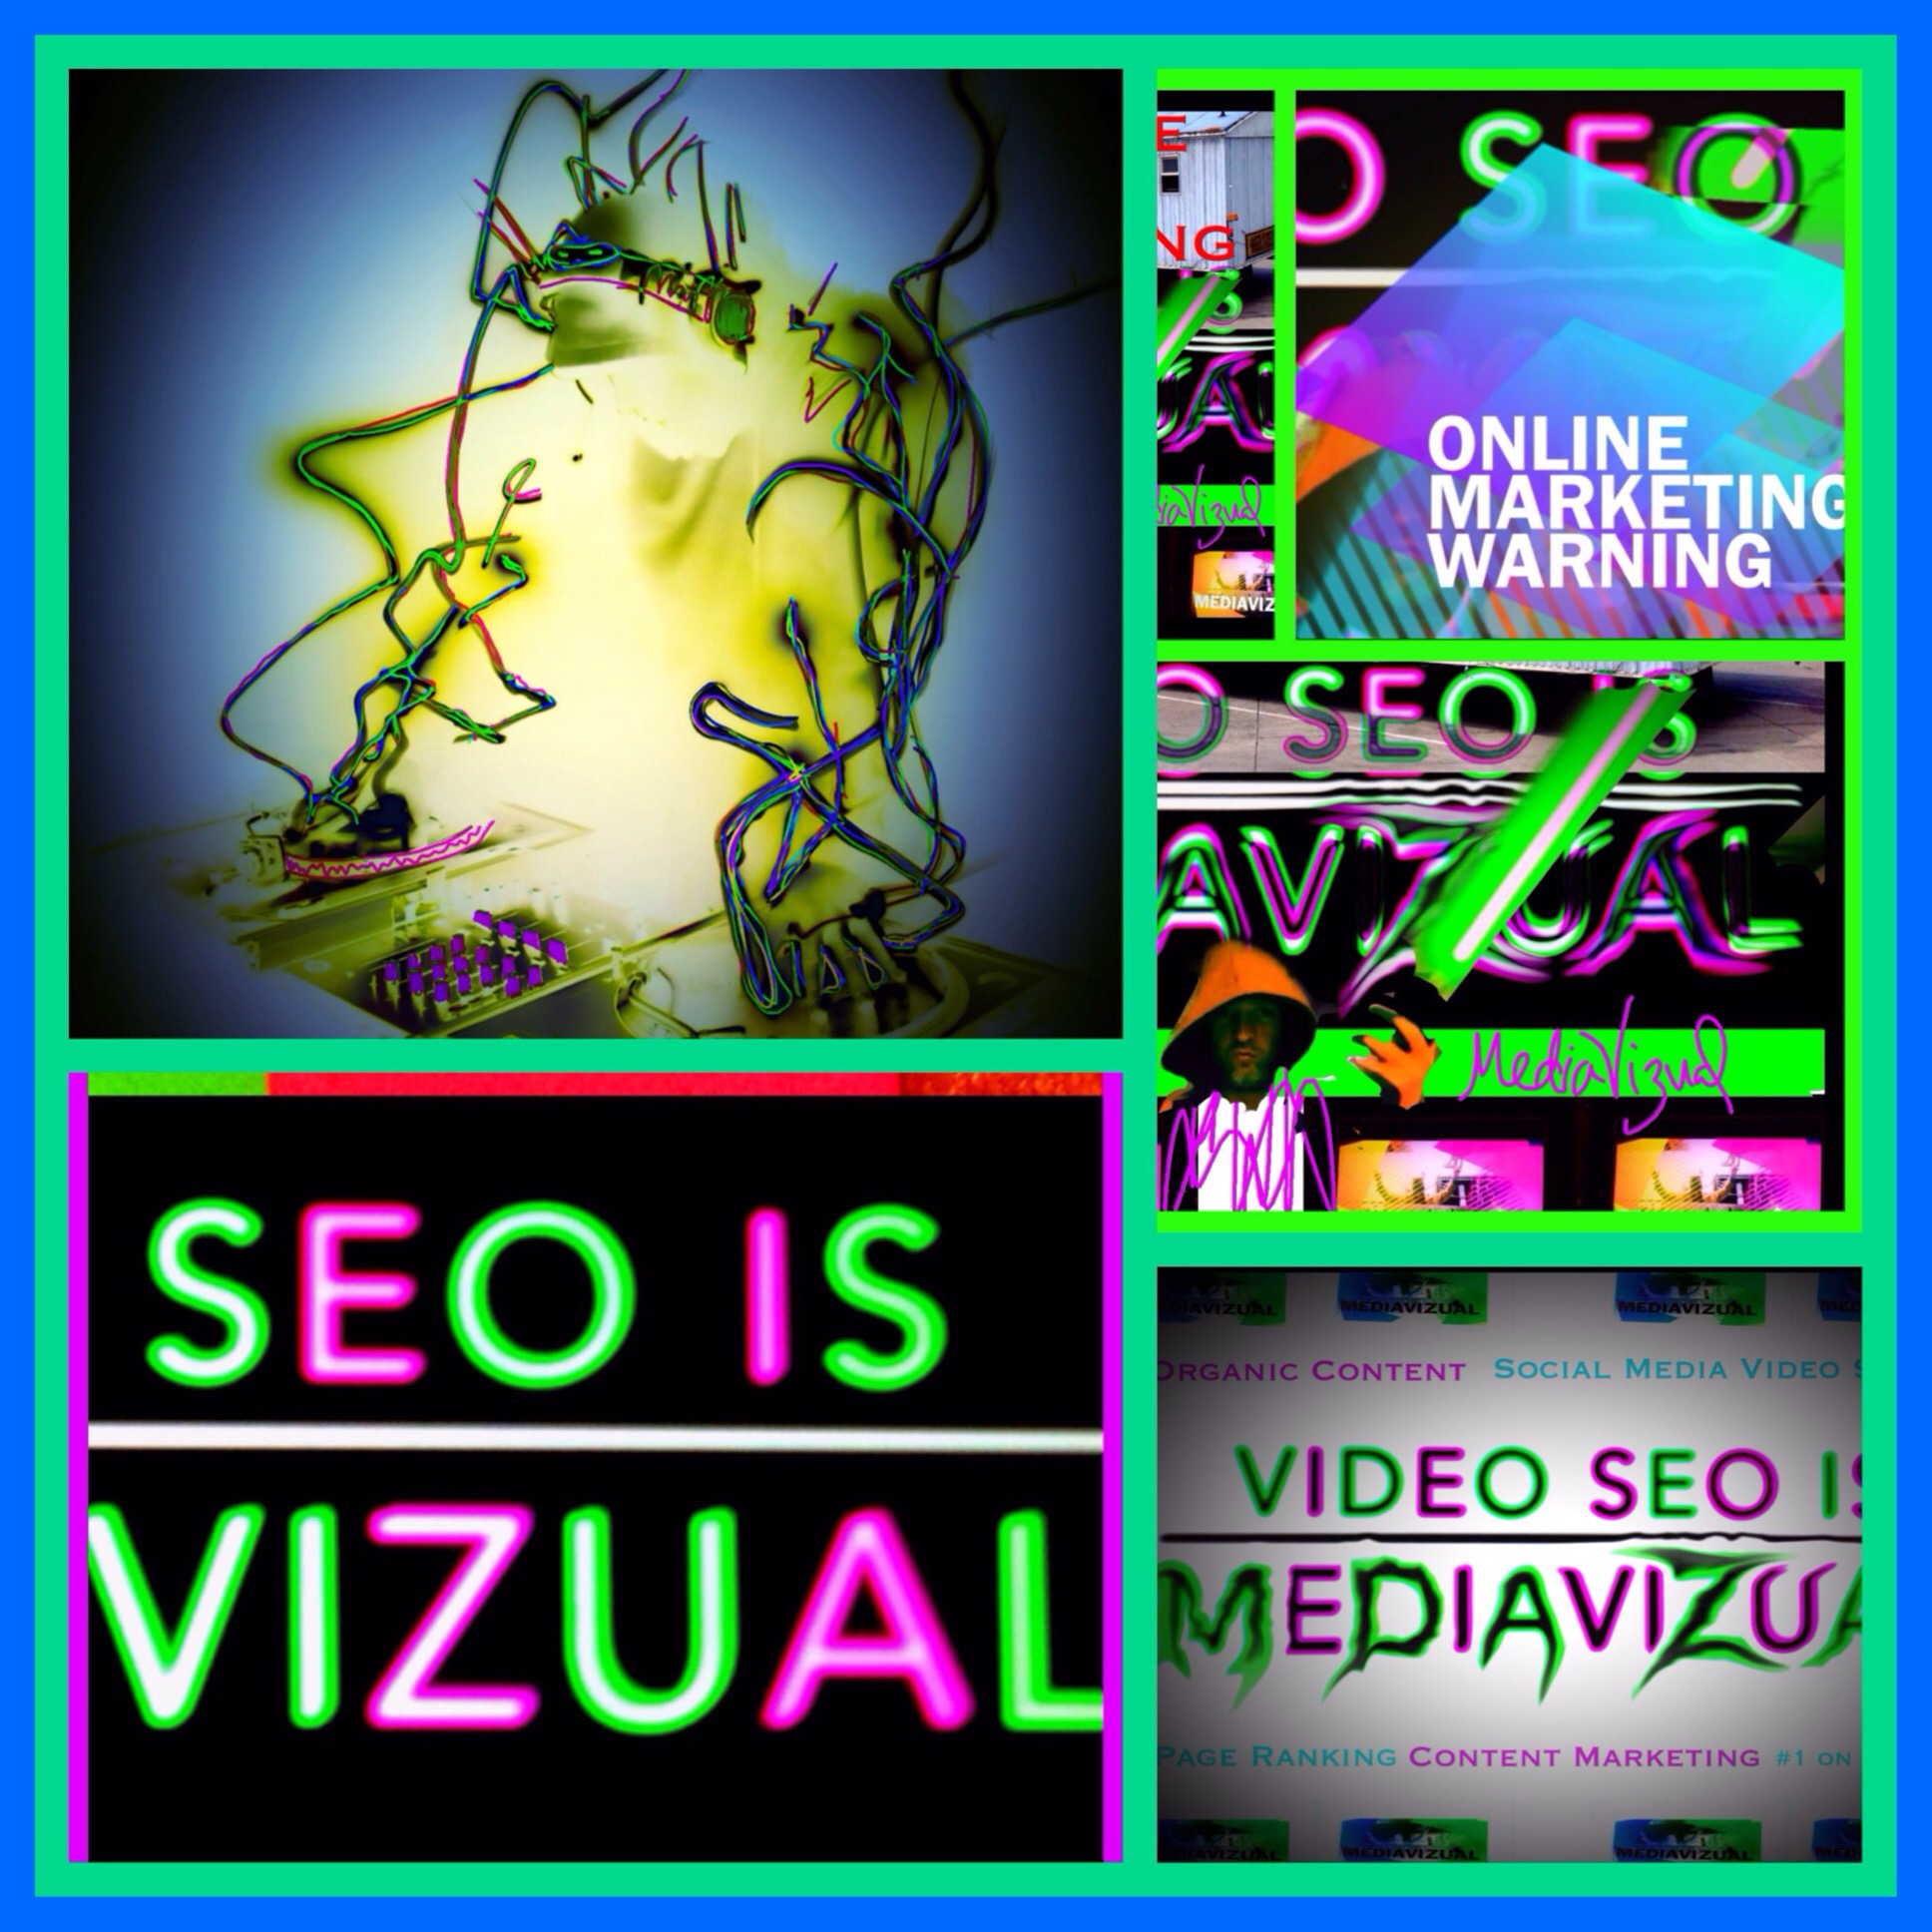 page ranking, google, video seo, www.mediavizual.com, best SEO, cville SEO, online video marketing